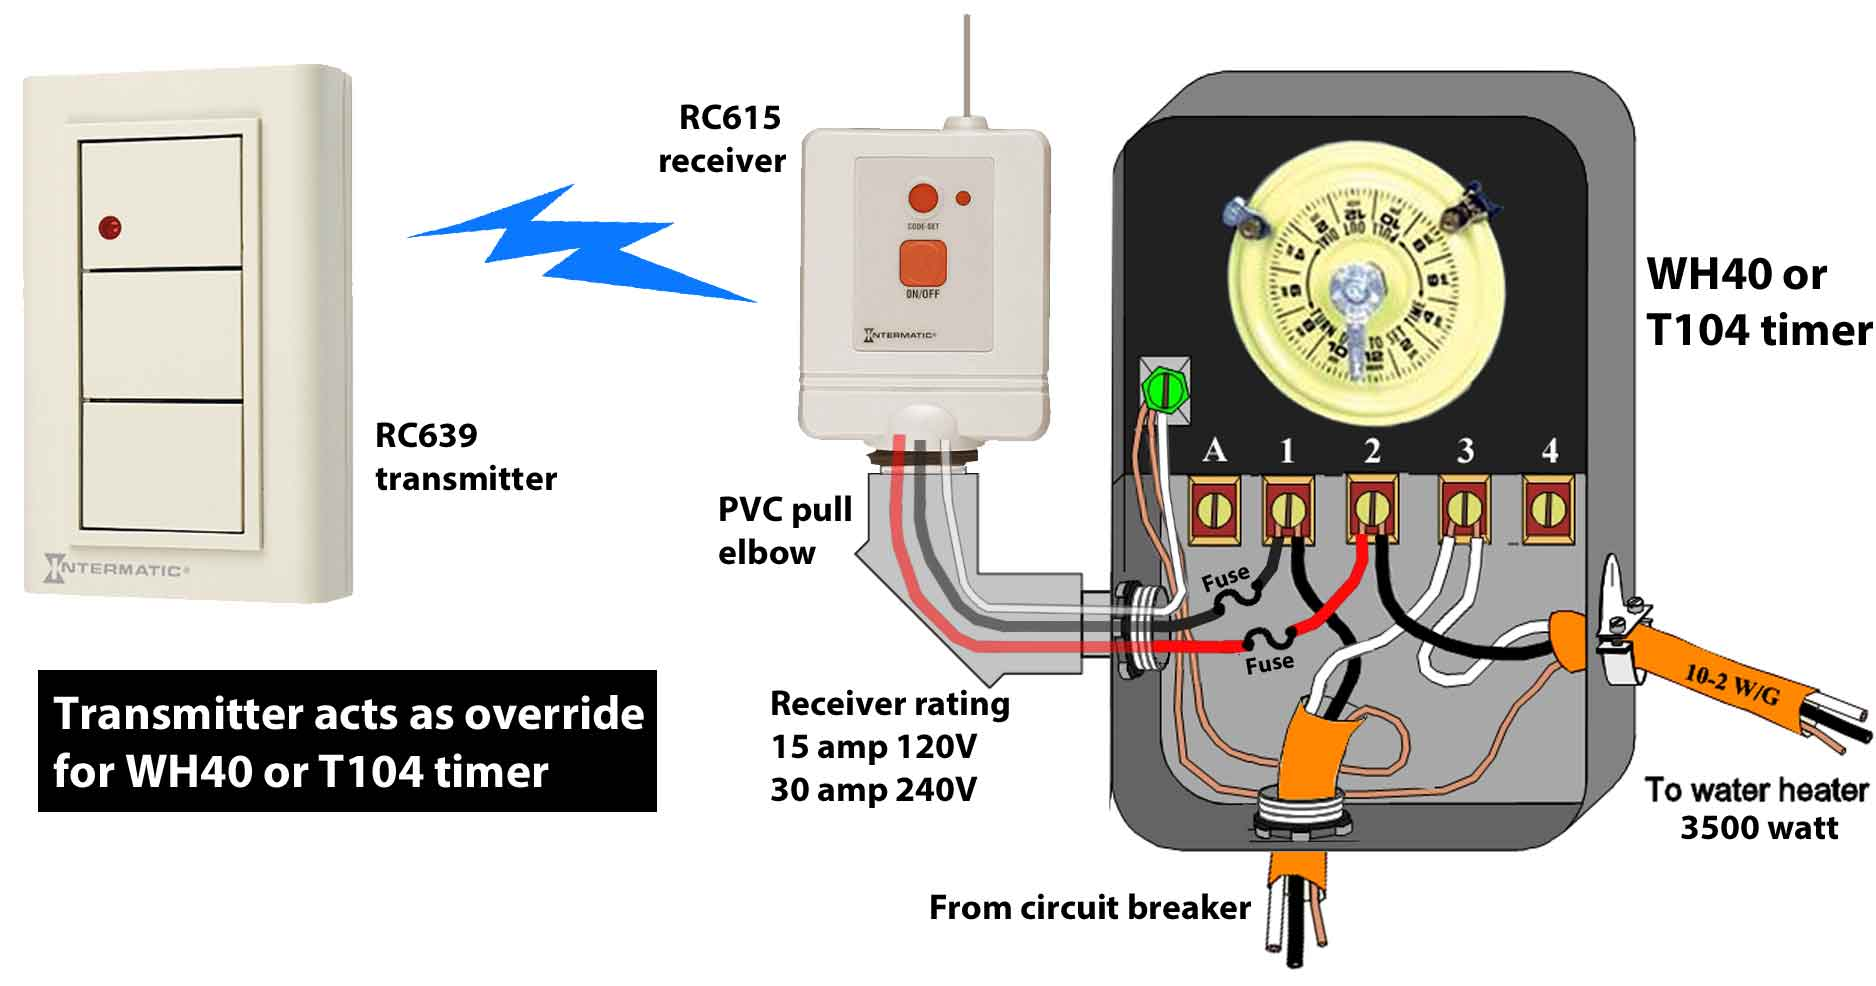 Intermatic remote RC control how to wire wh40 water heater timer timer switch wiring diagram at eliteediting.co